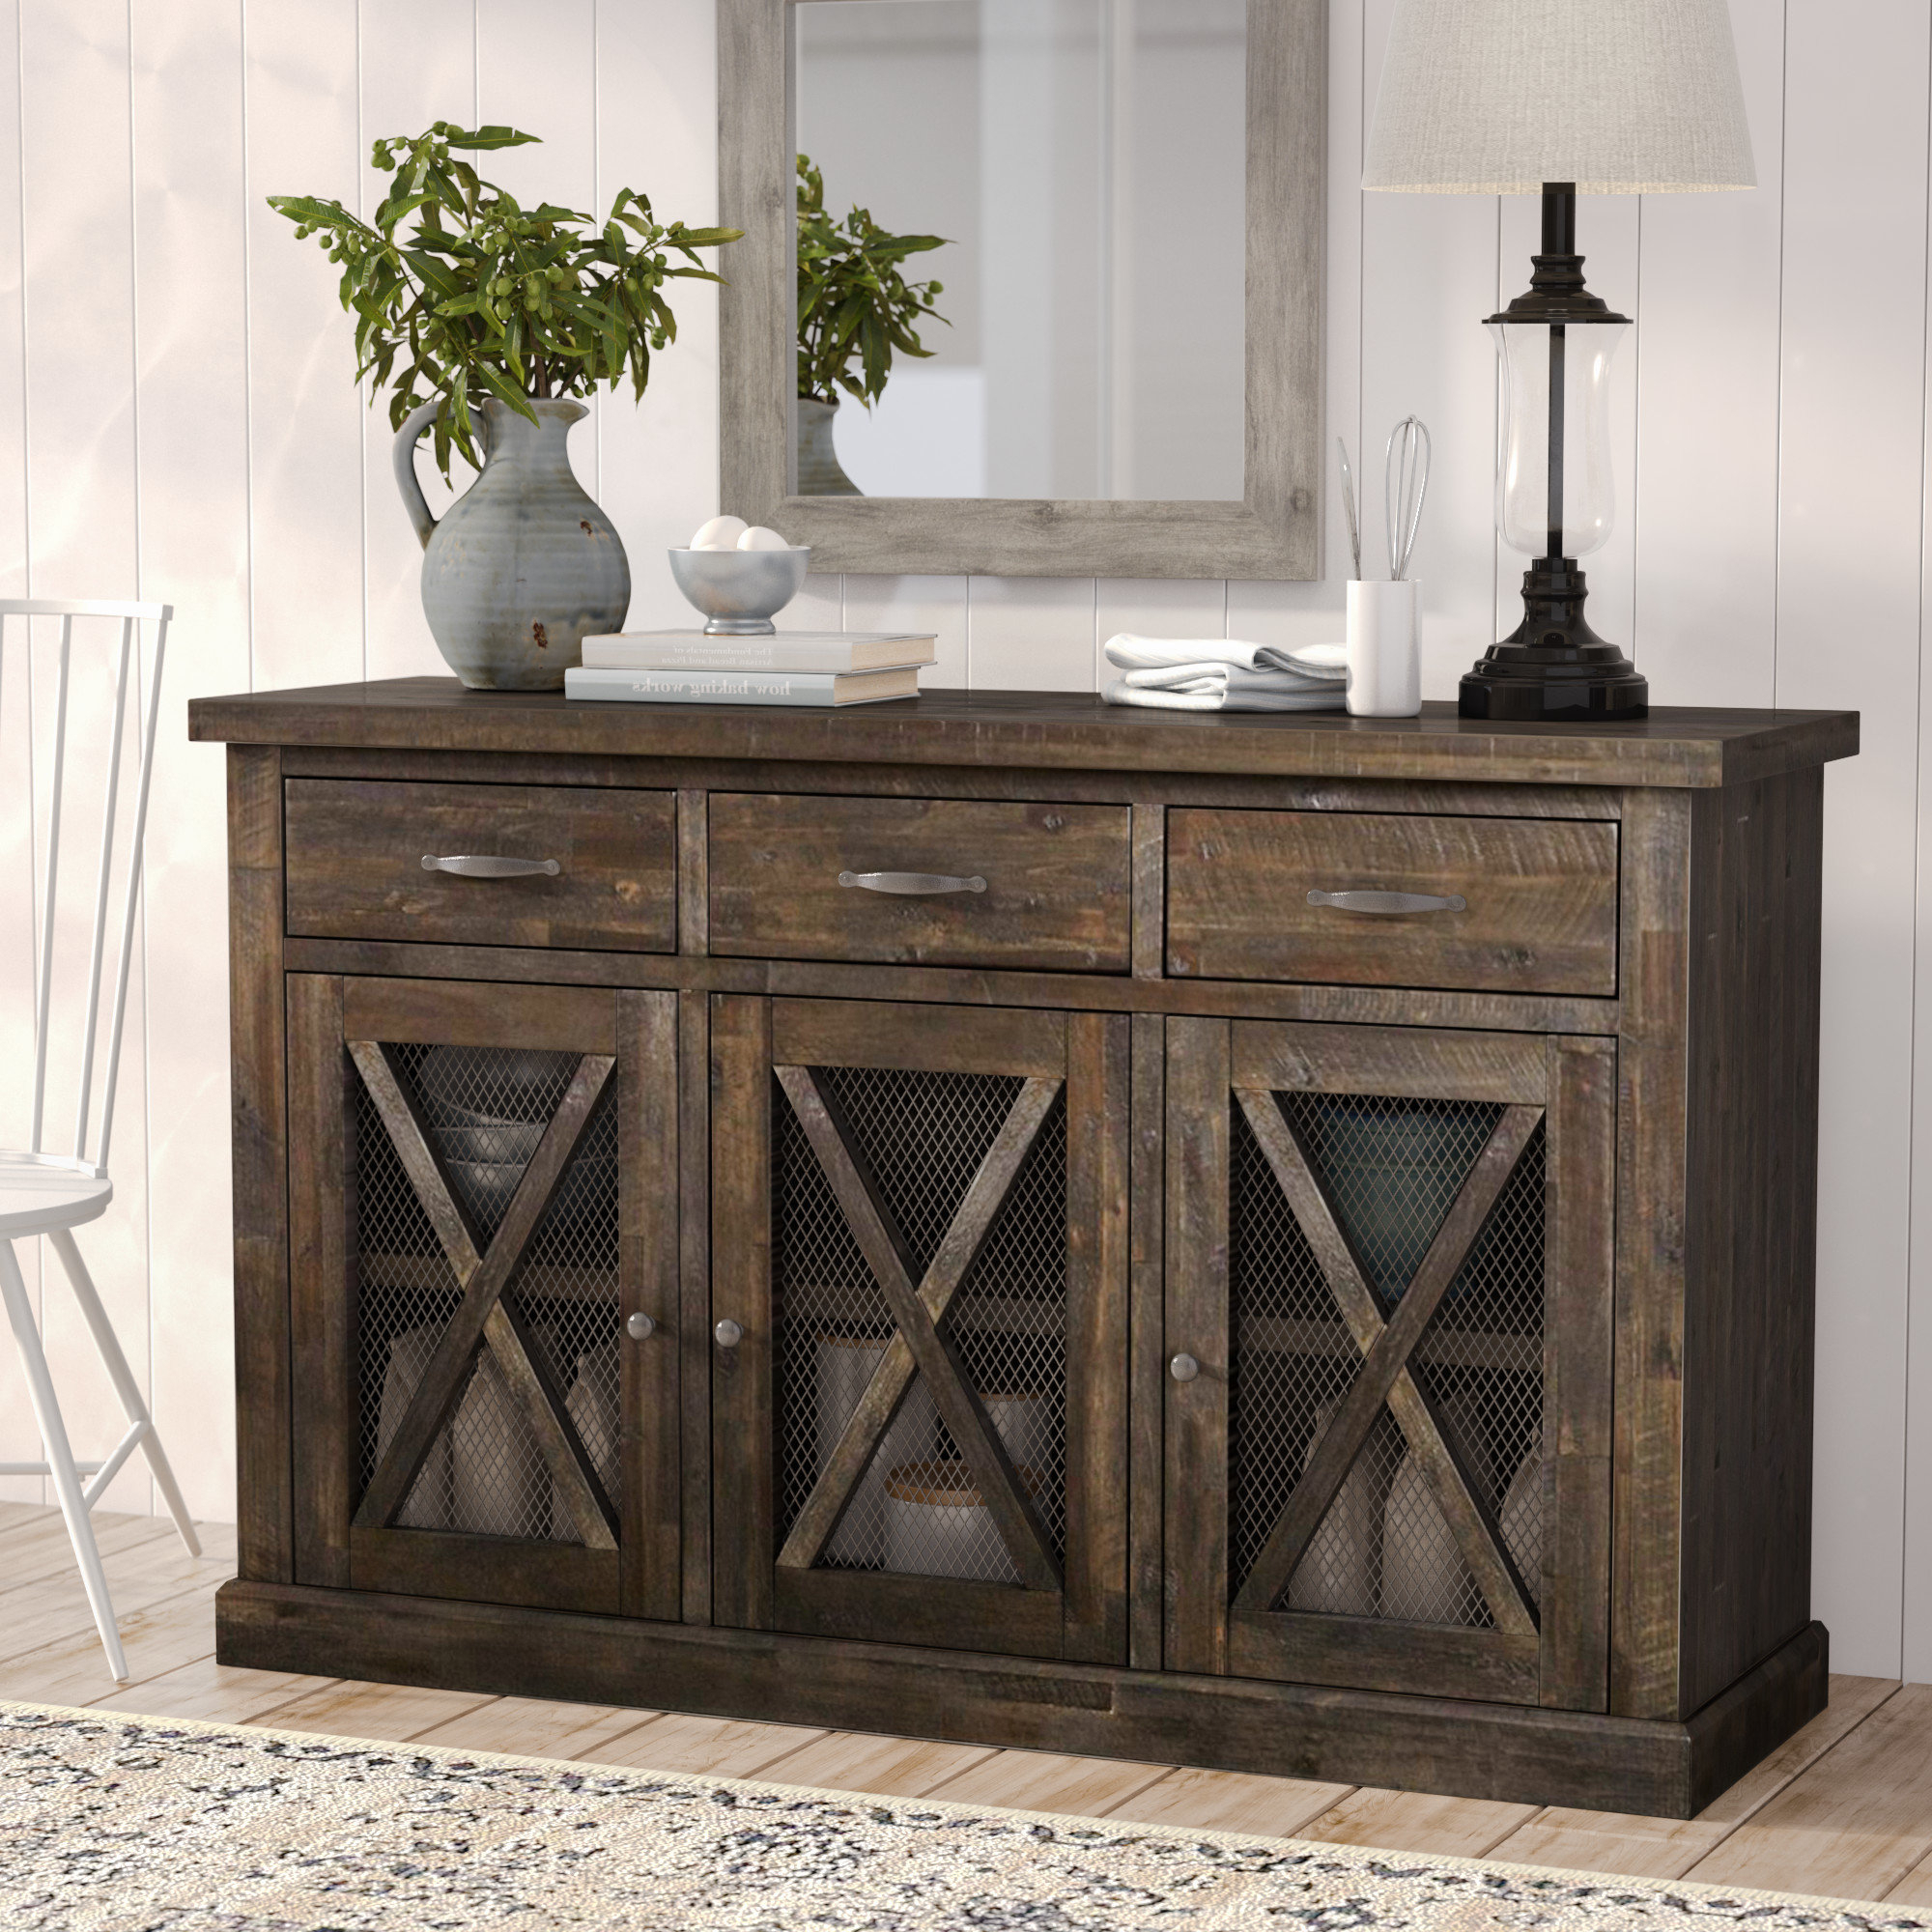 Colborne Sideboard & Reviews | Joss & Main In Courtdale Sideboards (View 3 of 20)